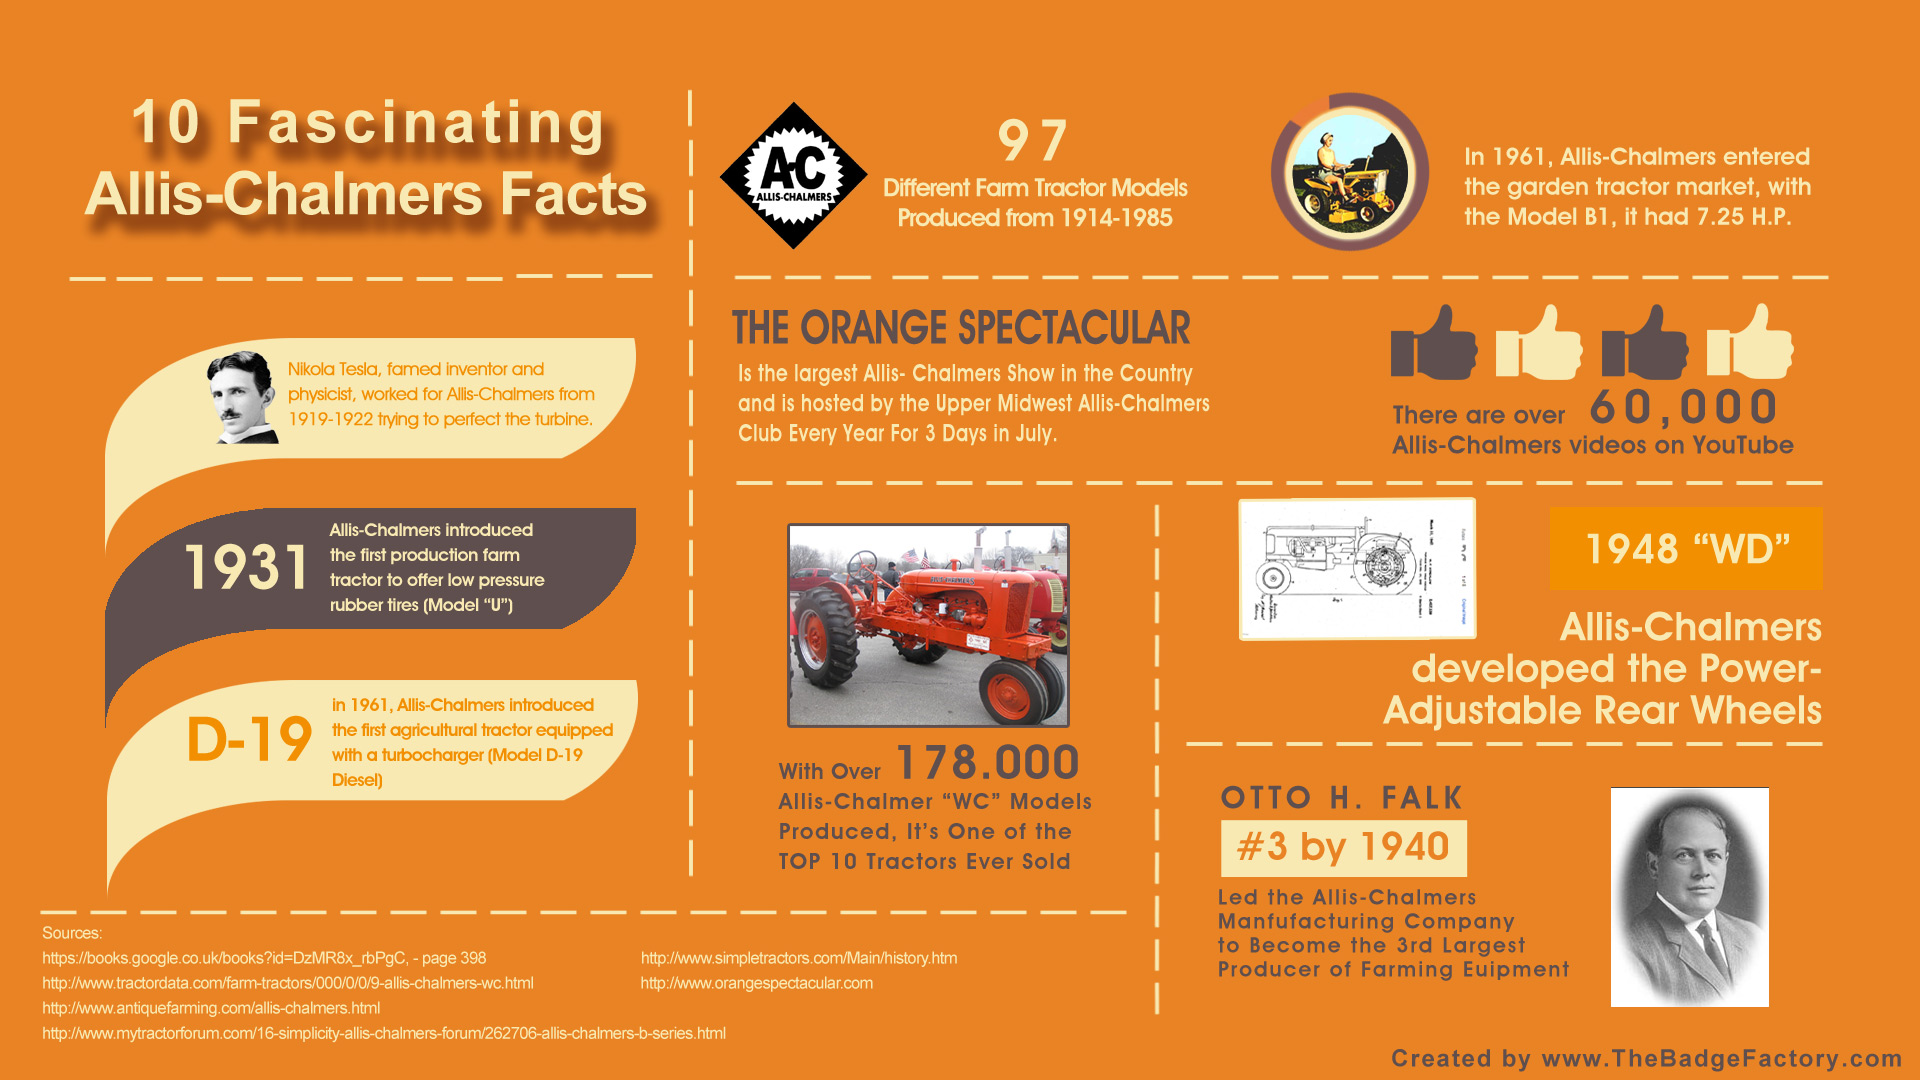 10 Fascinating Allis-Chalmers Facts | The Badge Factory